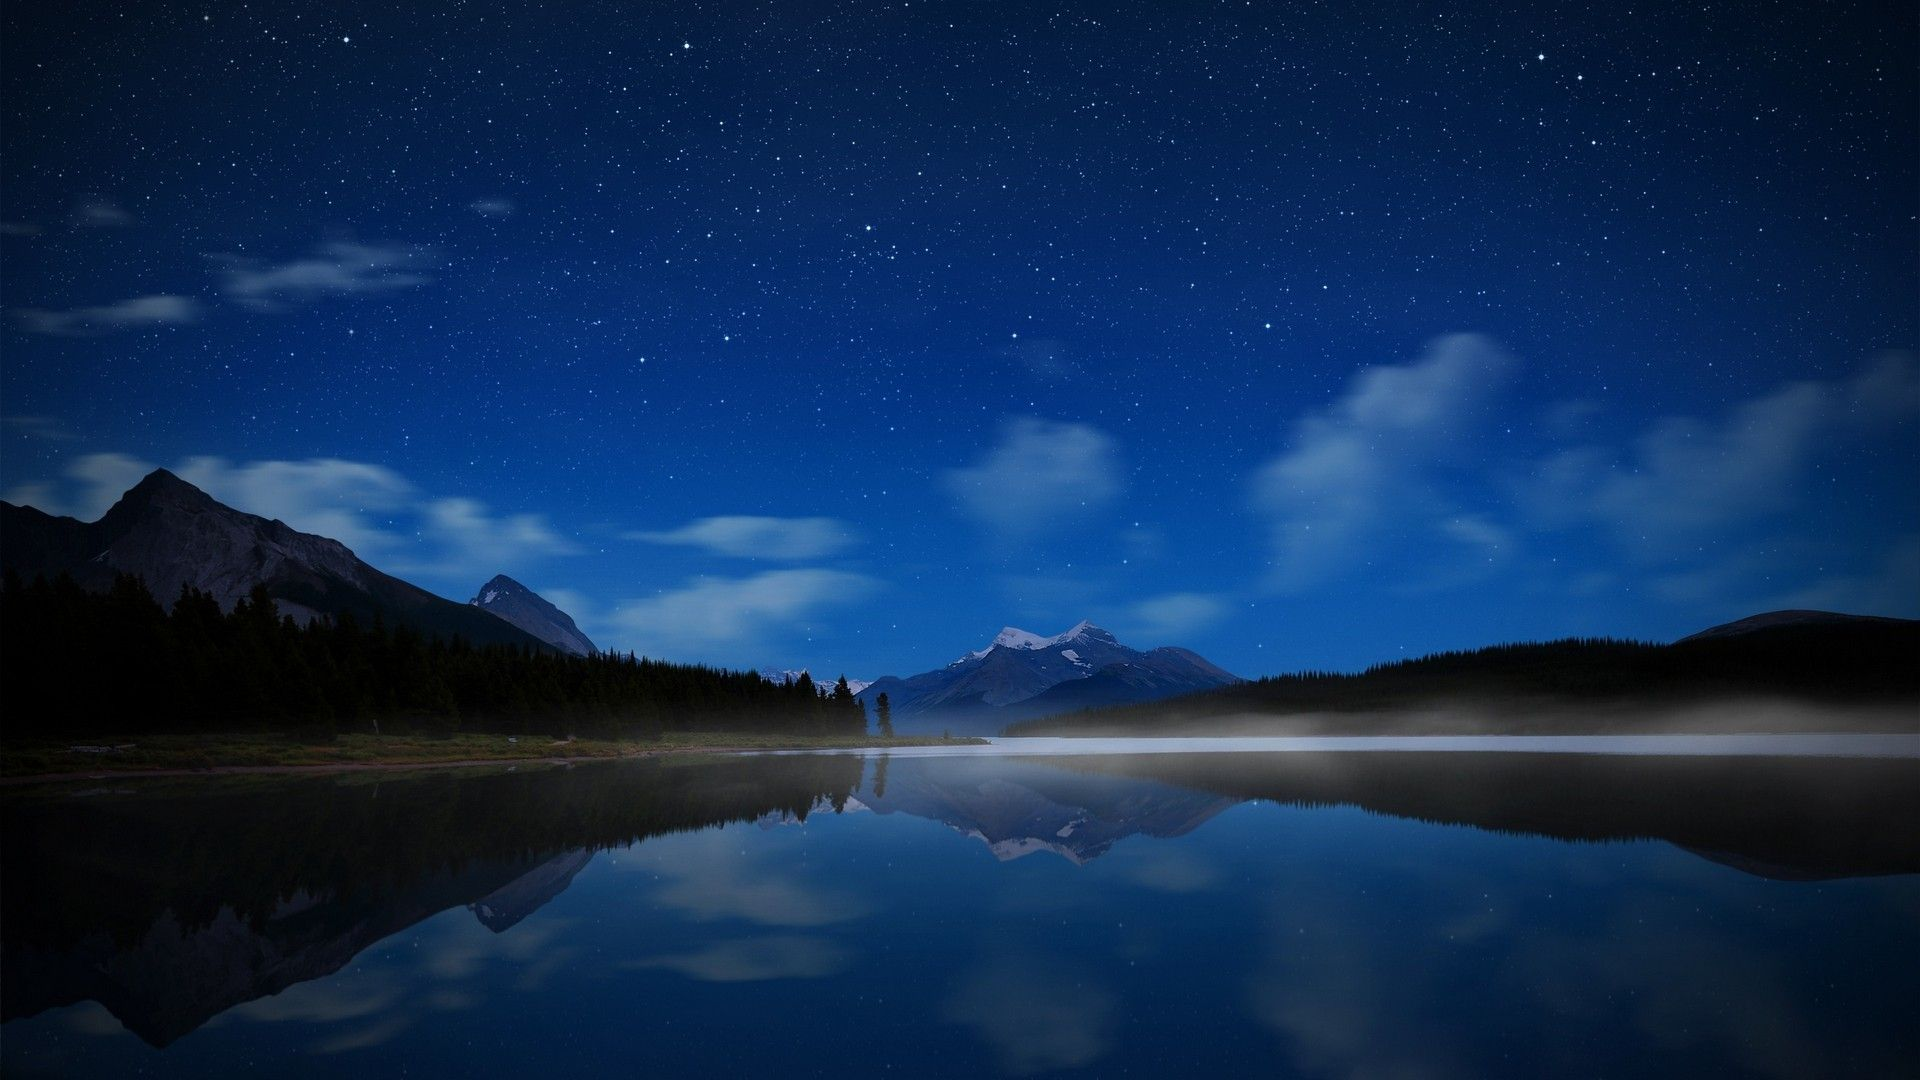 1920x1080 Hd Nature Wallpapers Hd Wallpapers 1920x1080 Nature Maligne Starry Sky Hd Nature